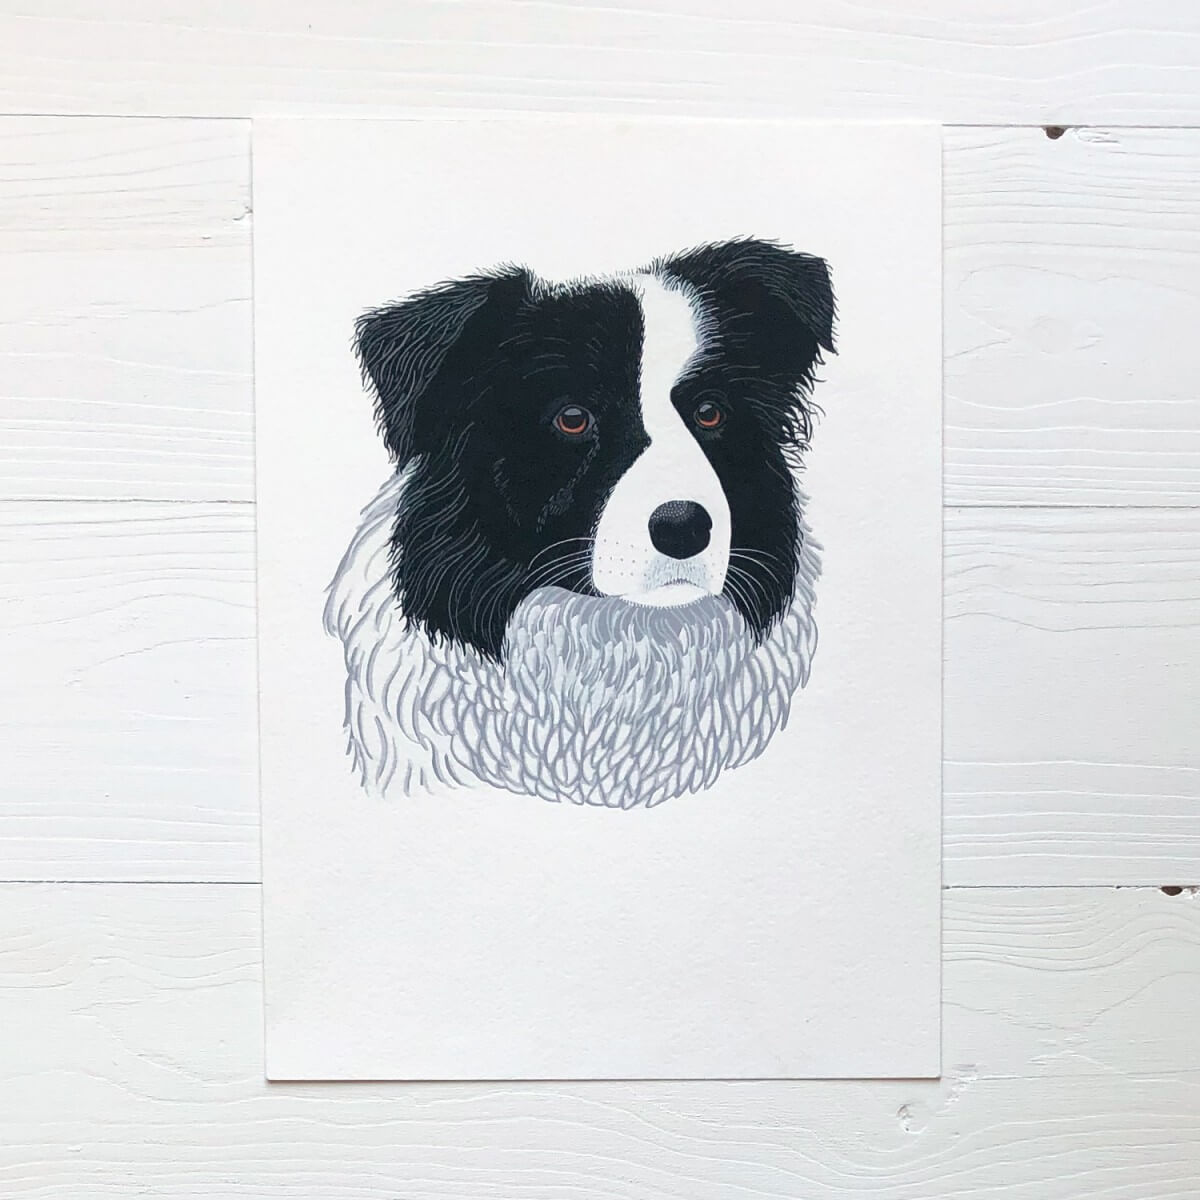 Border Collie Dog Original Gouache Painting By Bird